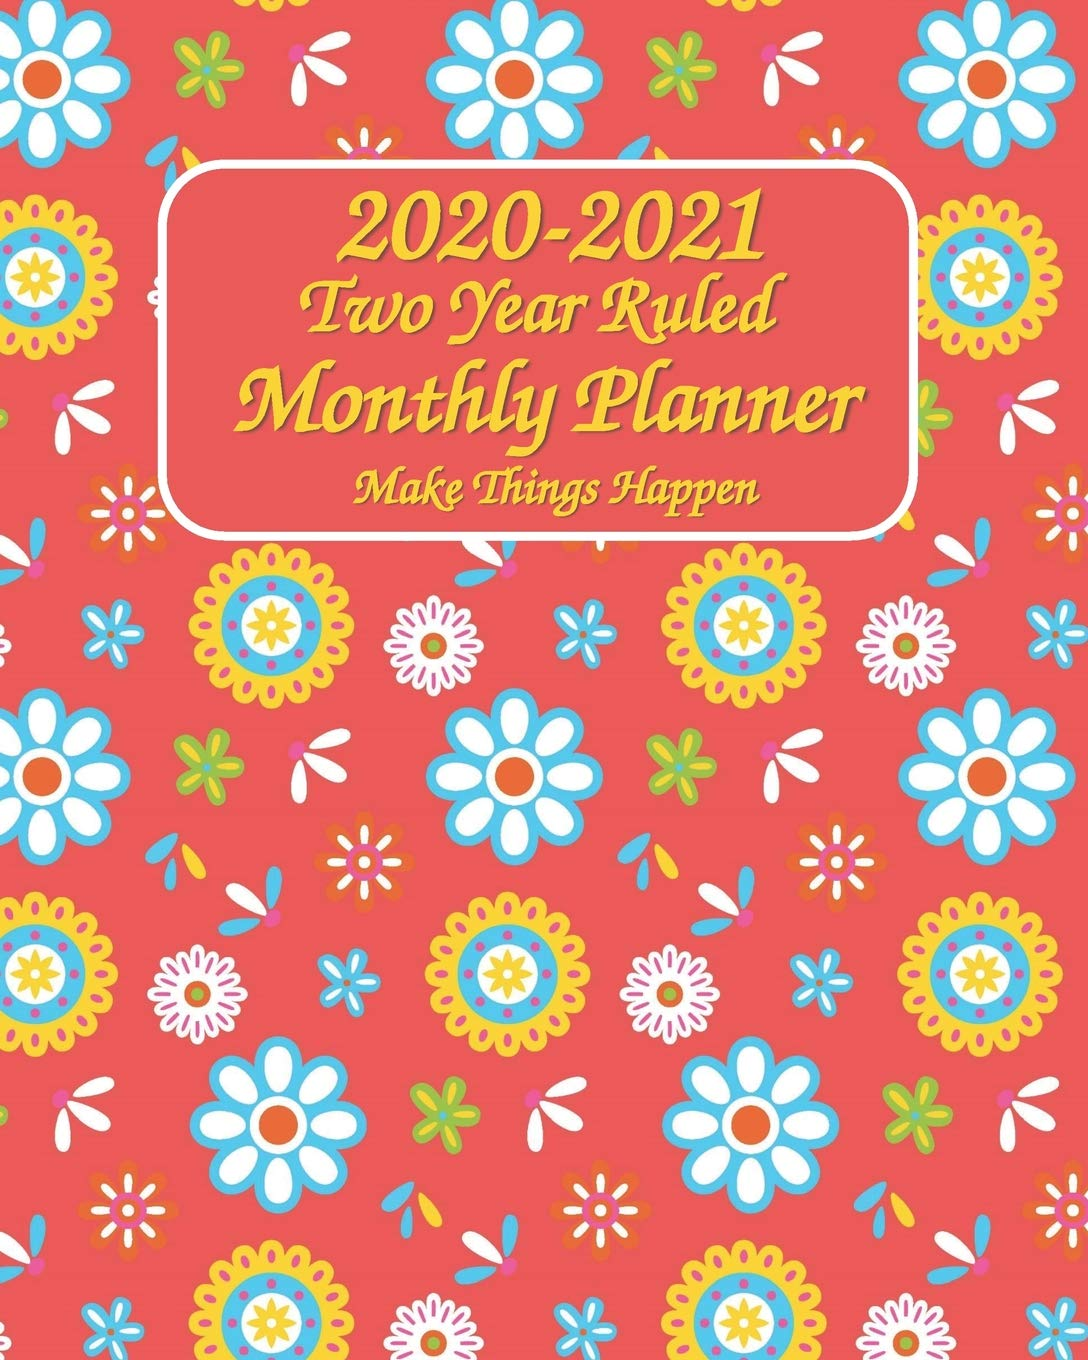 Amazon.com: 2020-2021 Two Year Ruled Monthly Planner Make ...